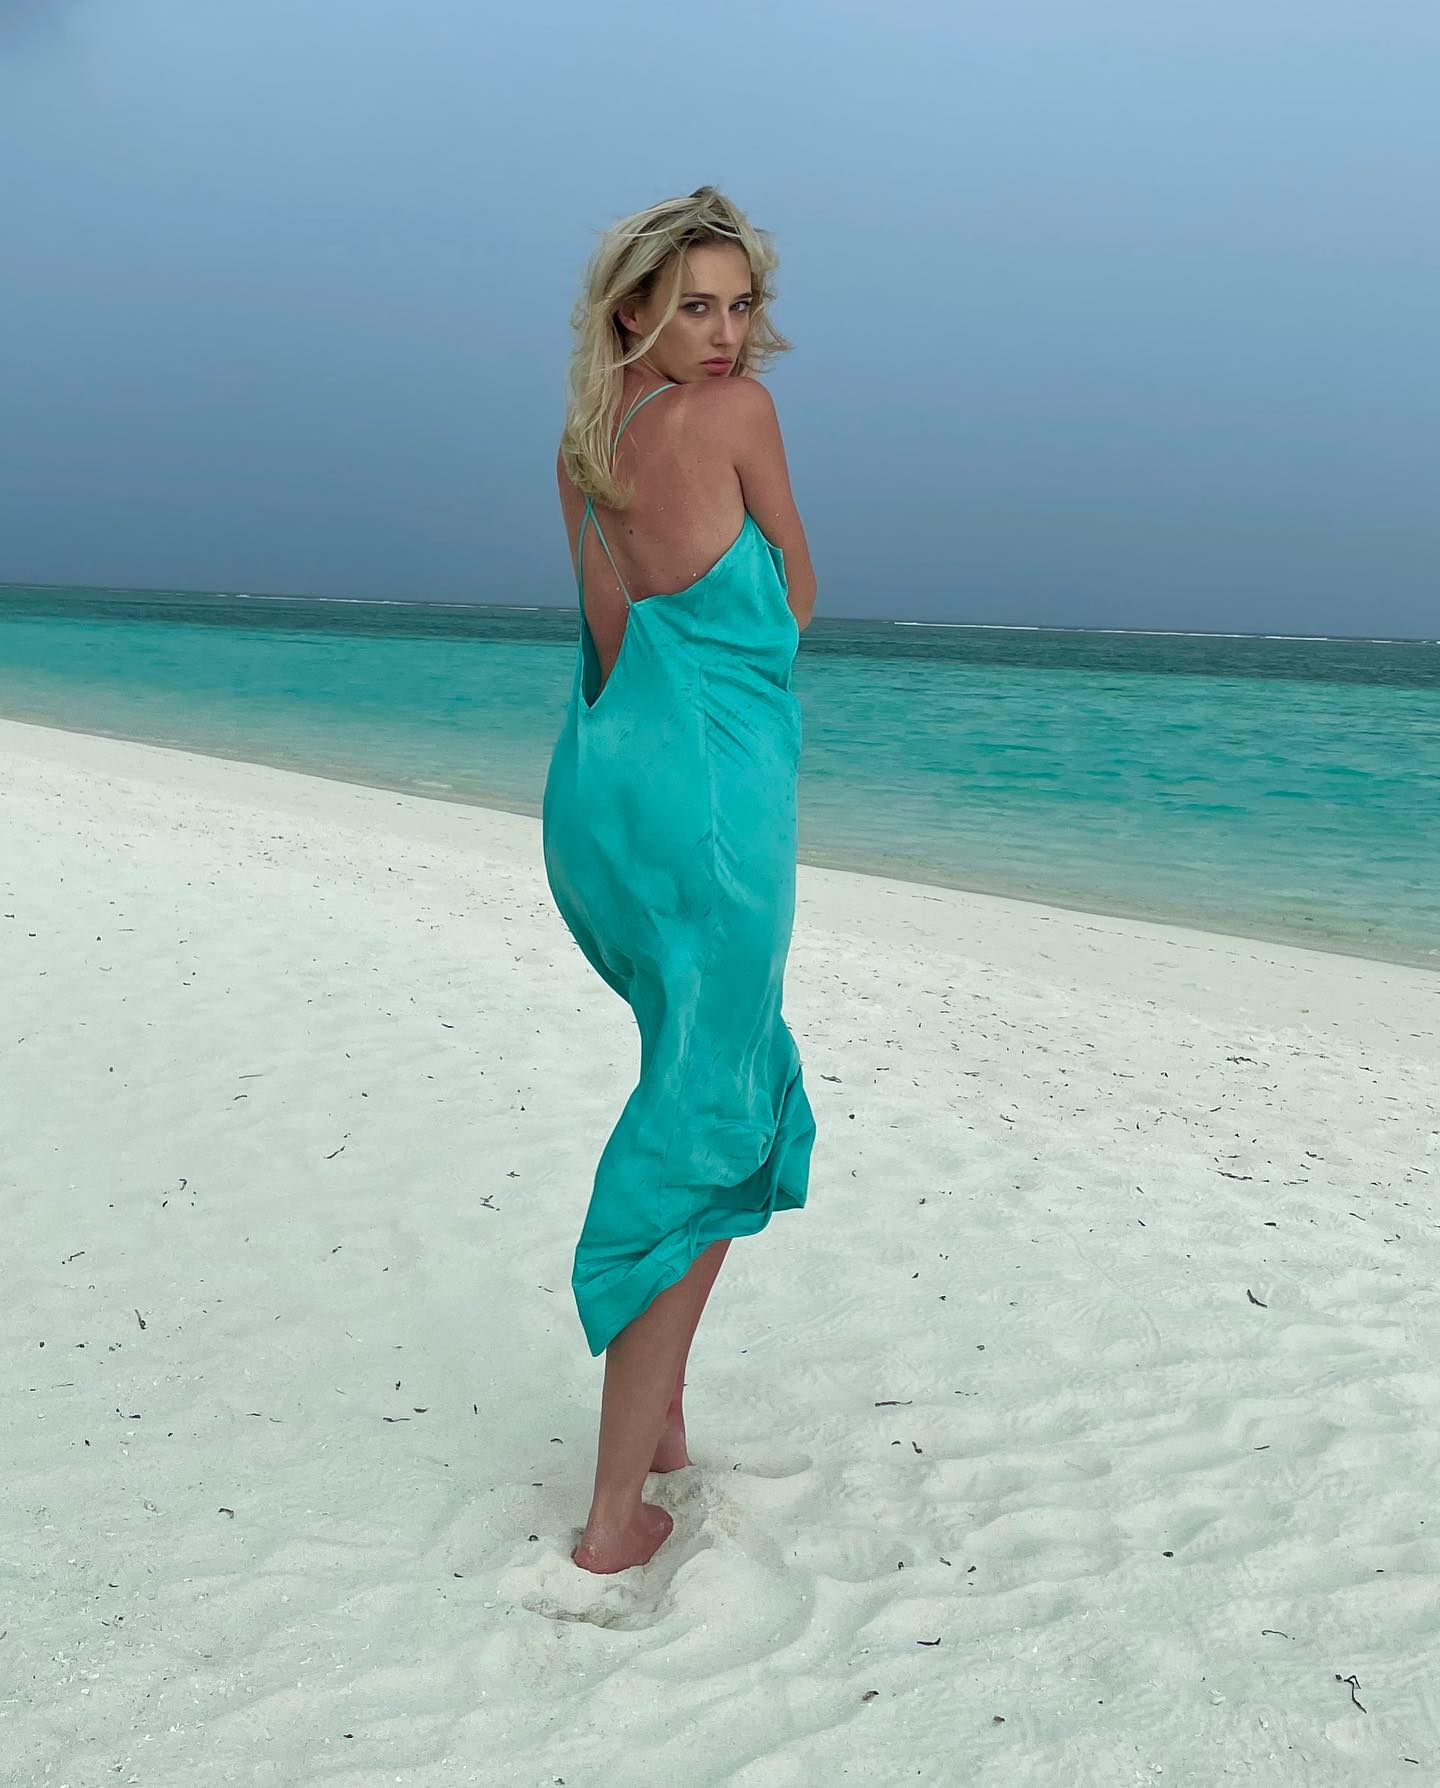 Maldive - Turquoise Dress Malluce